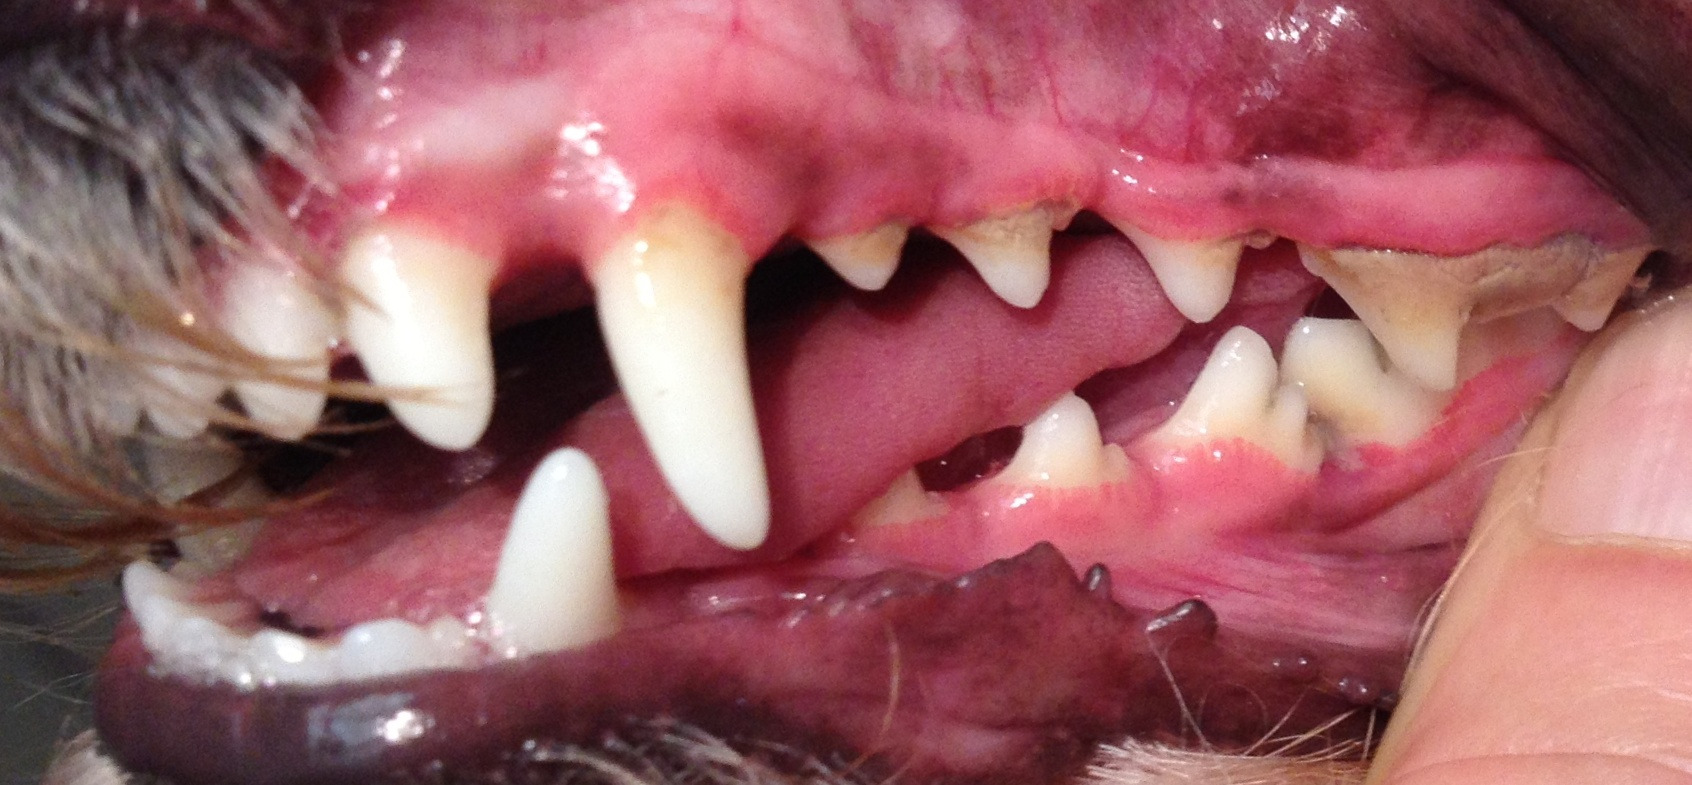 A common area of crowding. Note the increased gingivitis and calculus on molar as a result.